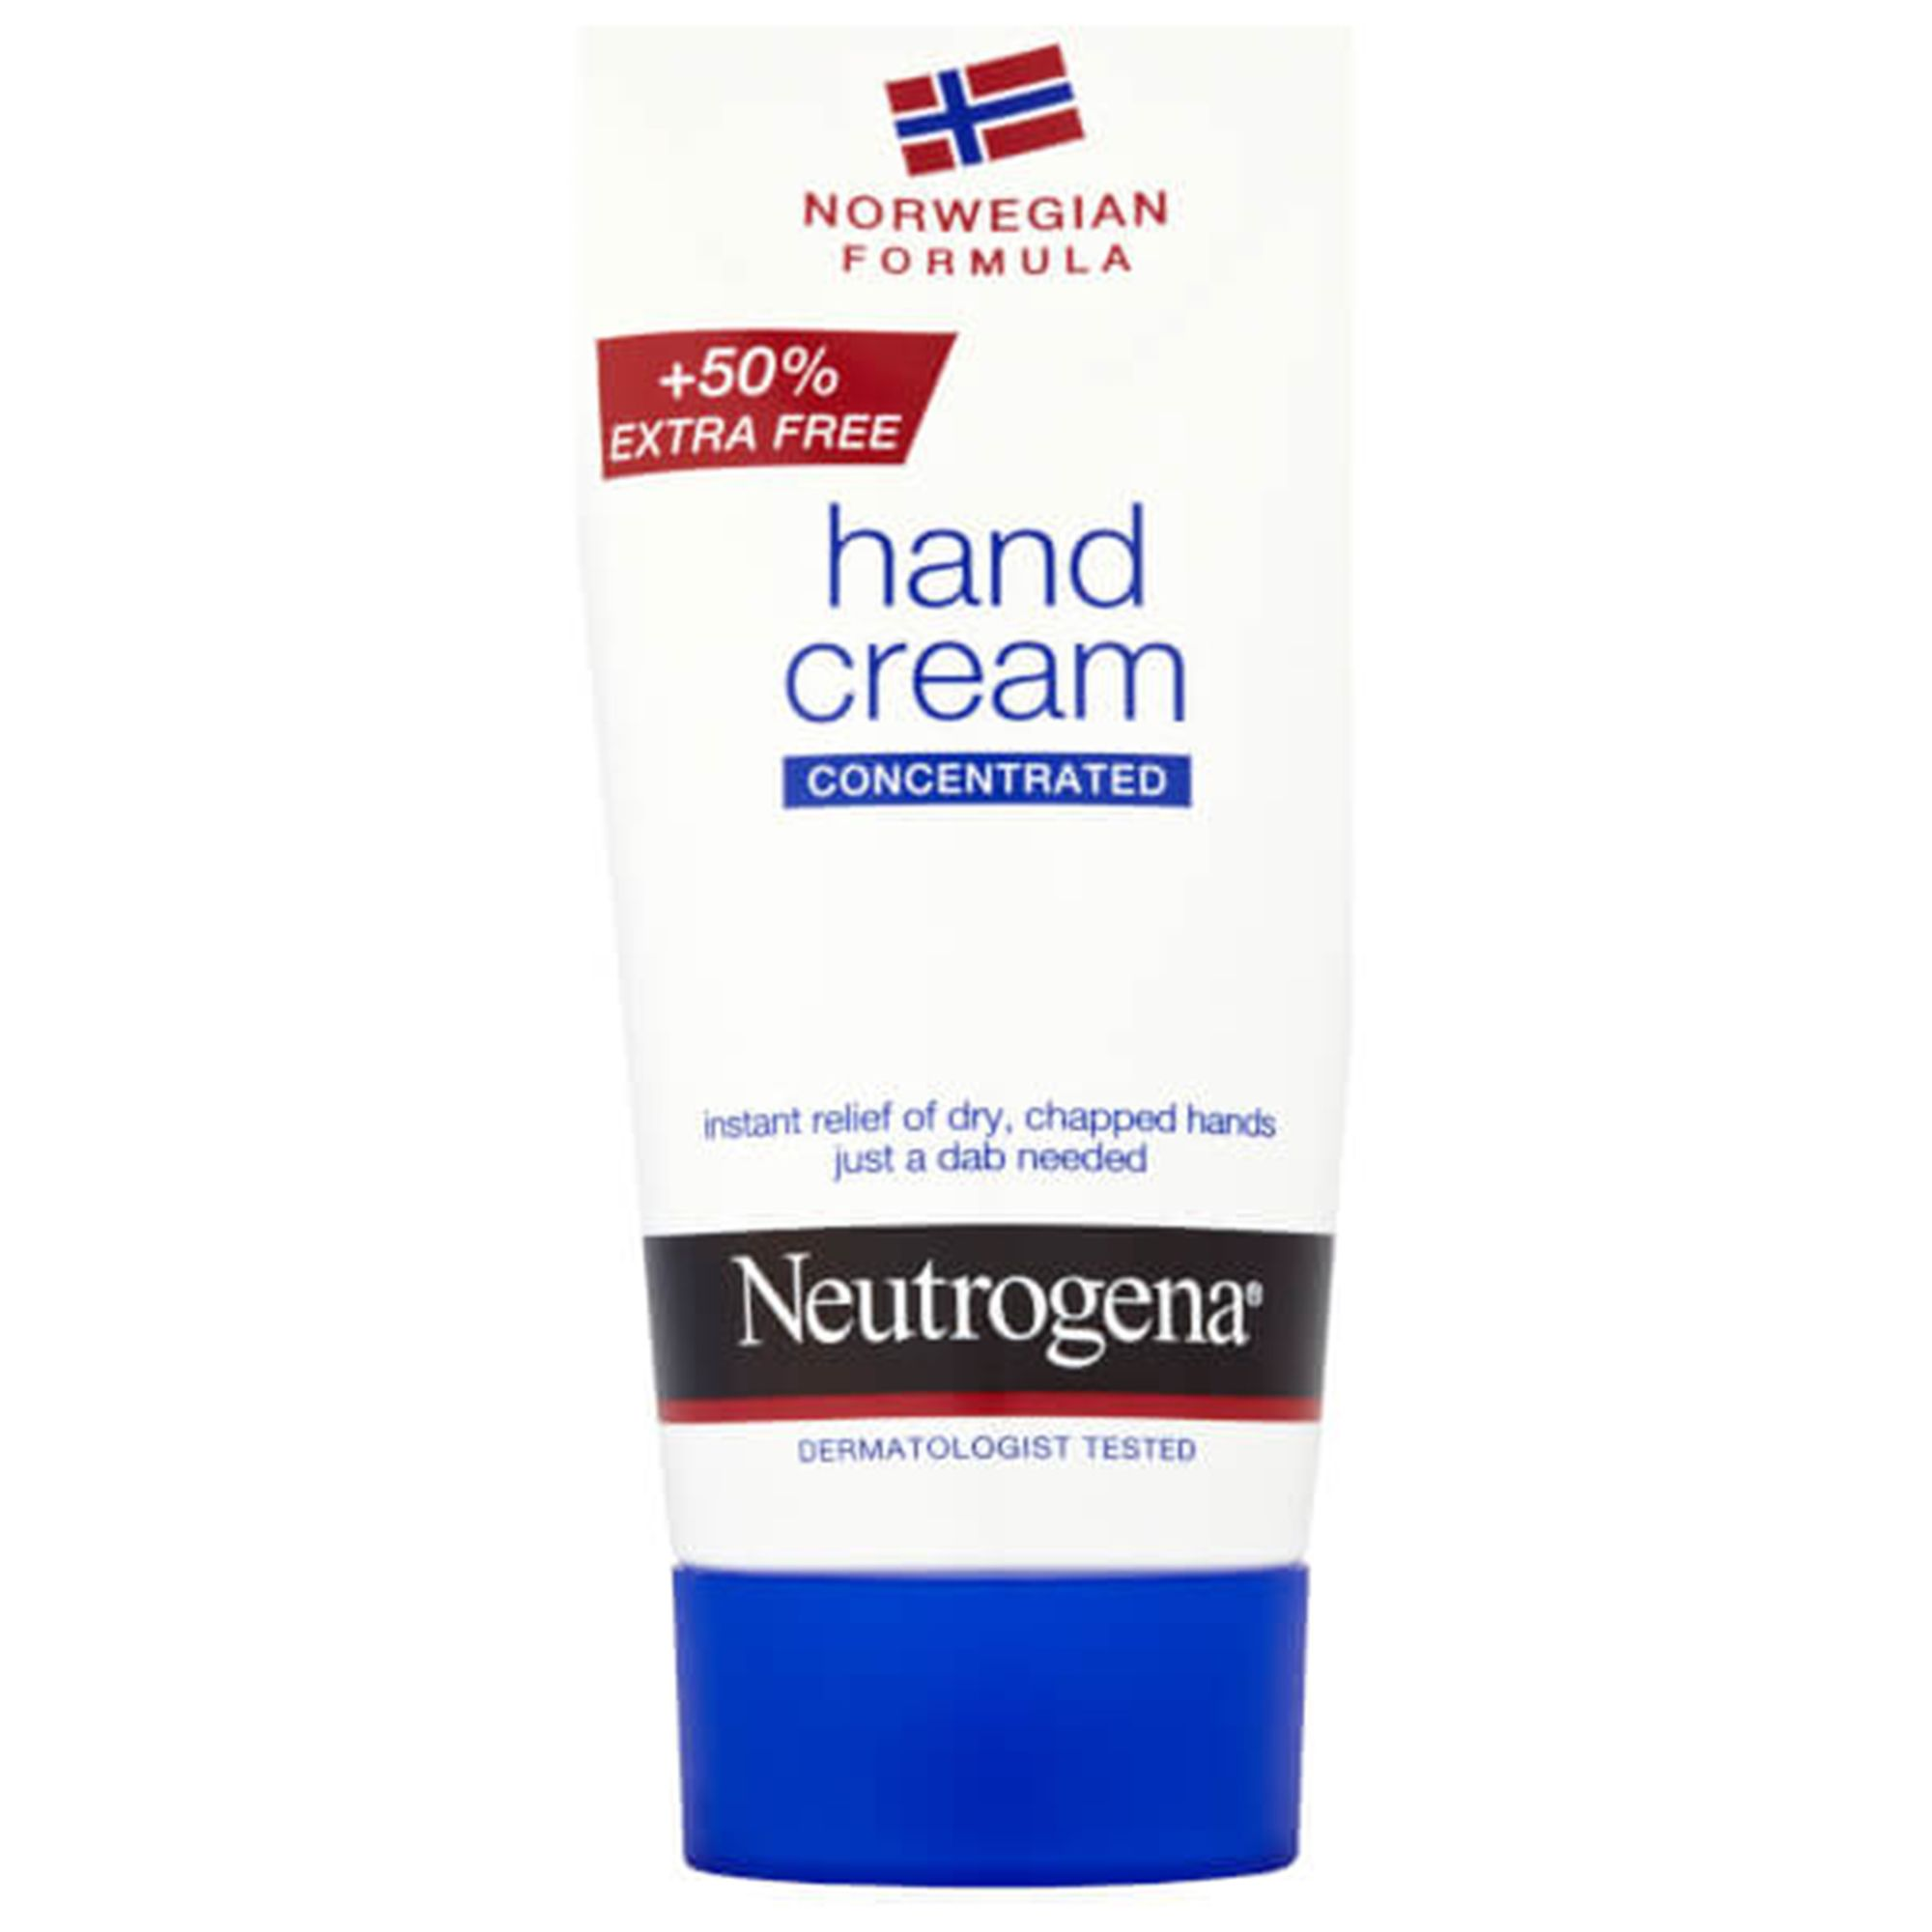 hand cream for extremely dry cracked skin